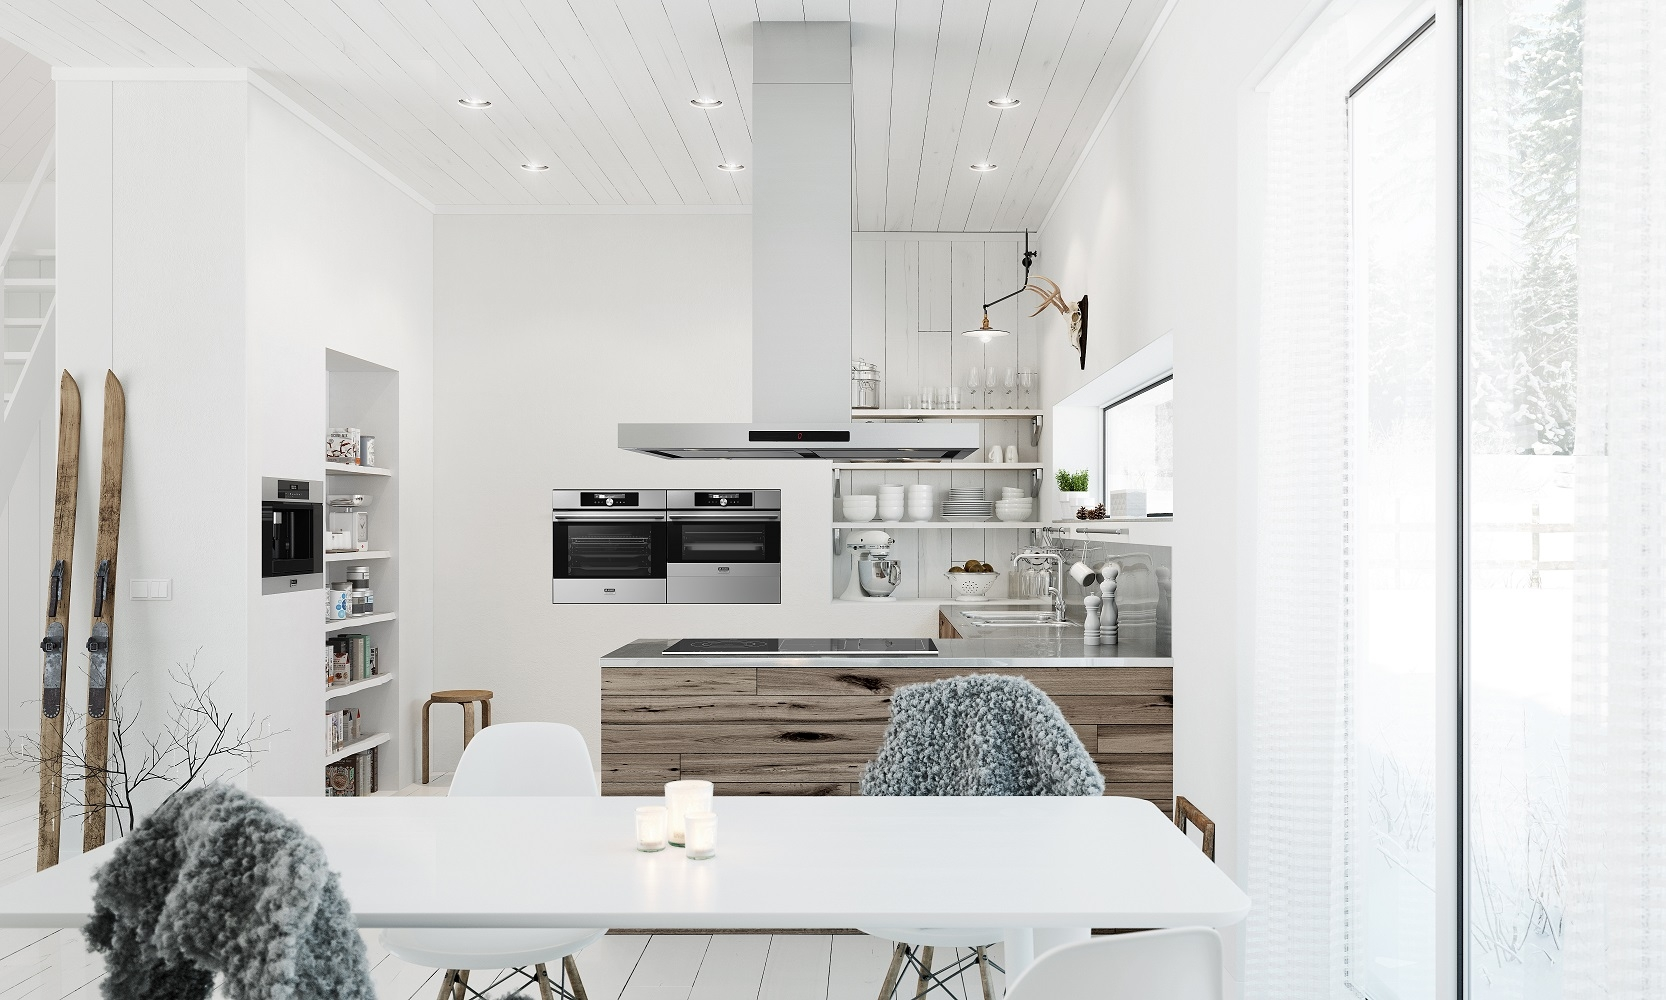 New Member - ASKO Appliances: Inspired by Scandinavia